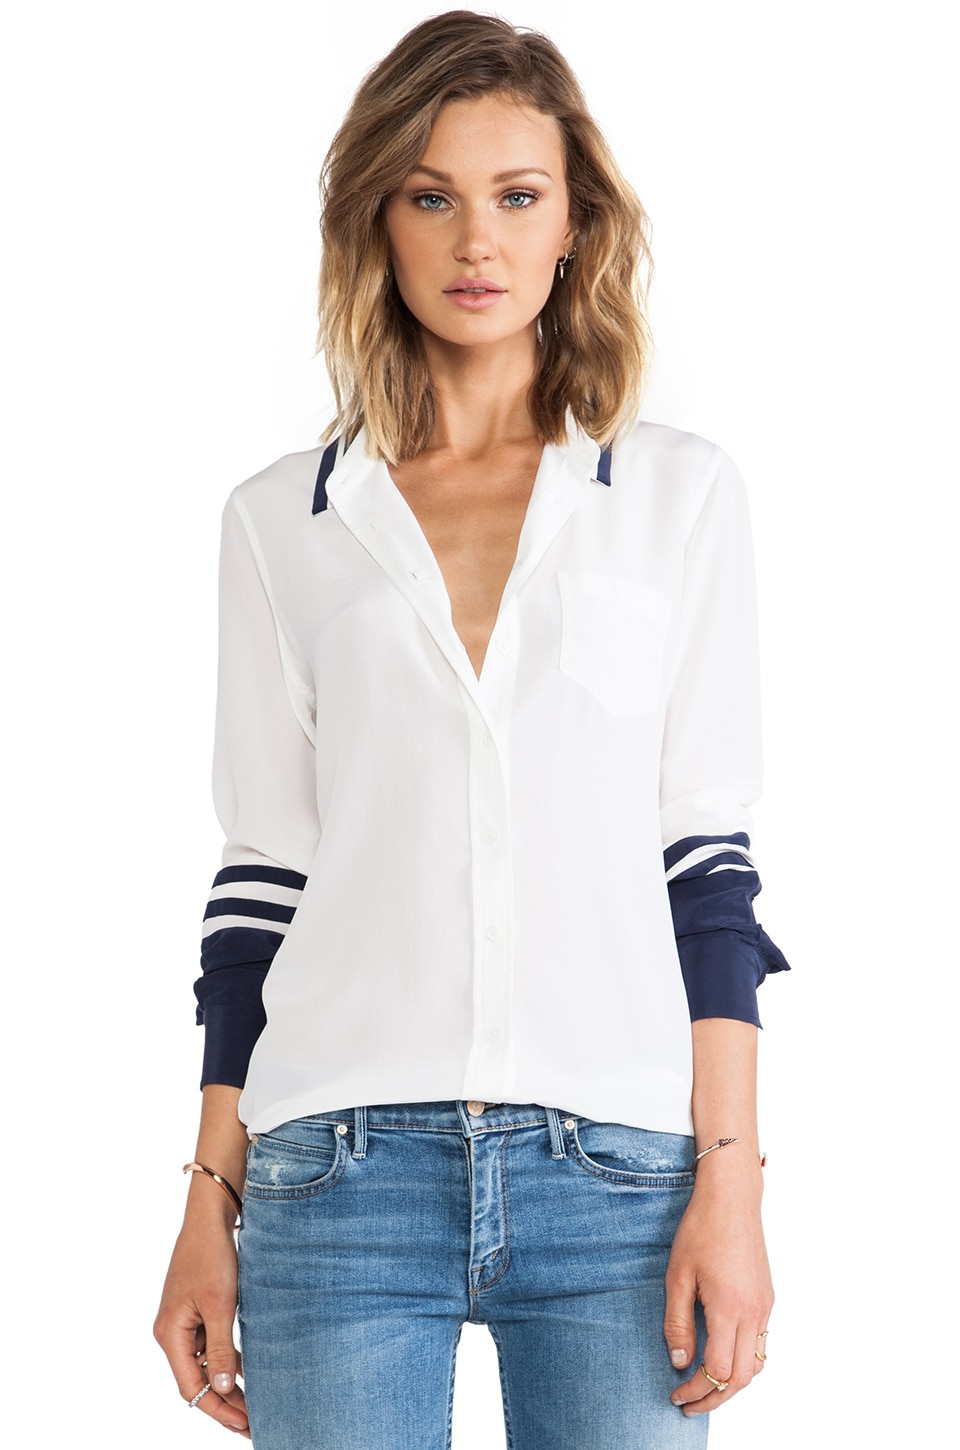 Equipment Brett Blouse in Bright White & Peacoat